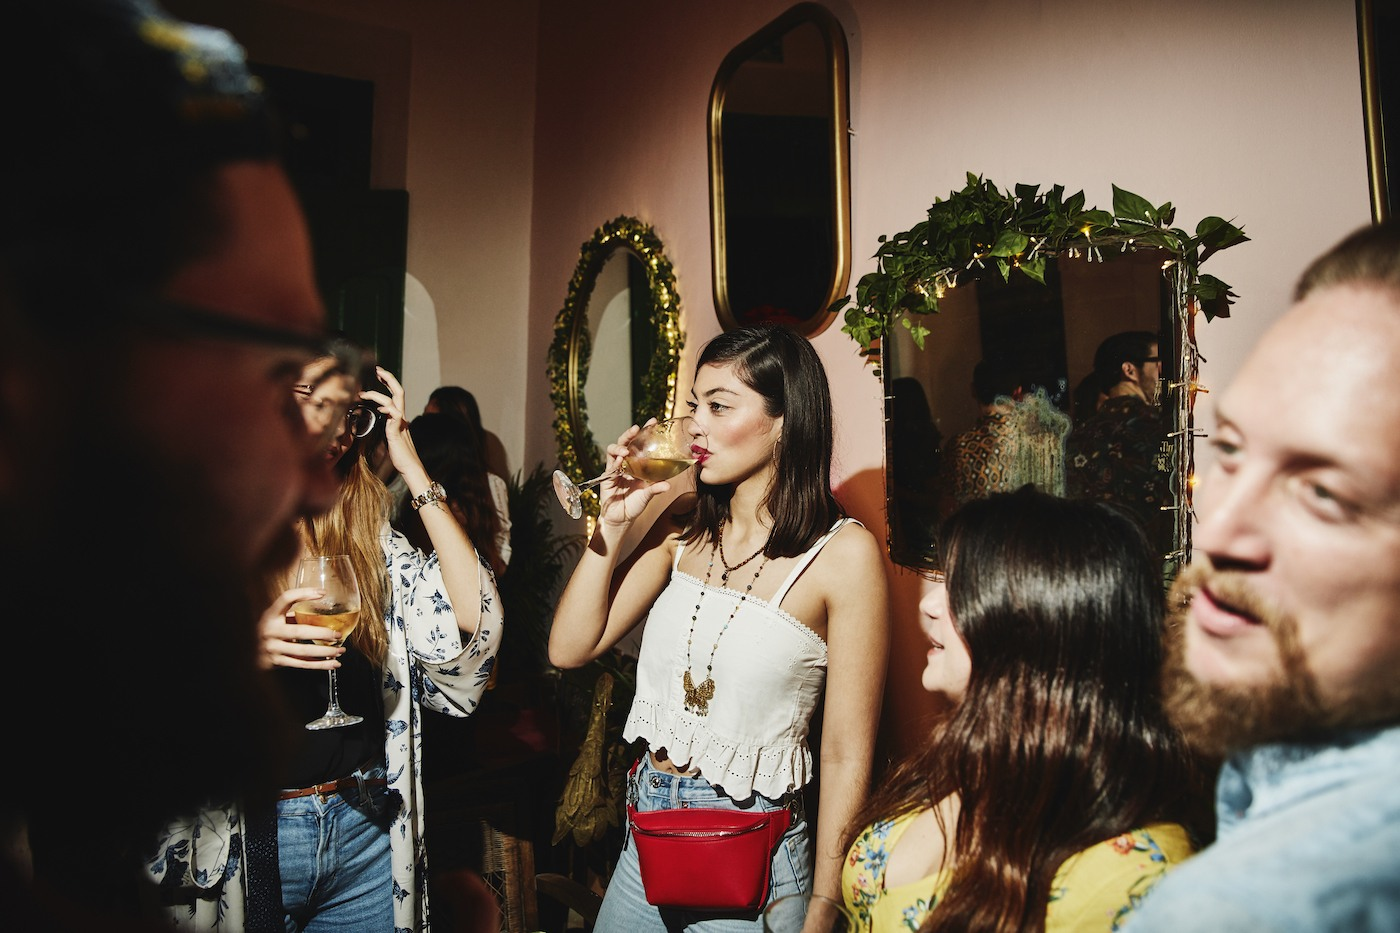 Thumbnail for Do you love parties but hate being the center of attention? You might be a shy extrovert—here's how to deal